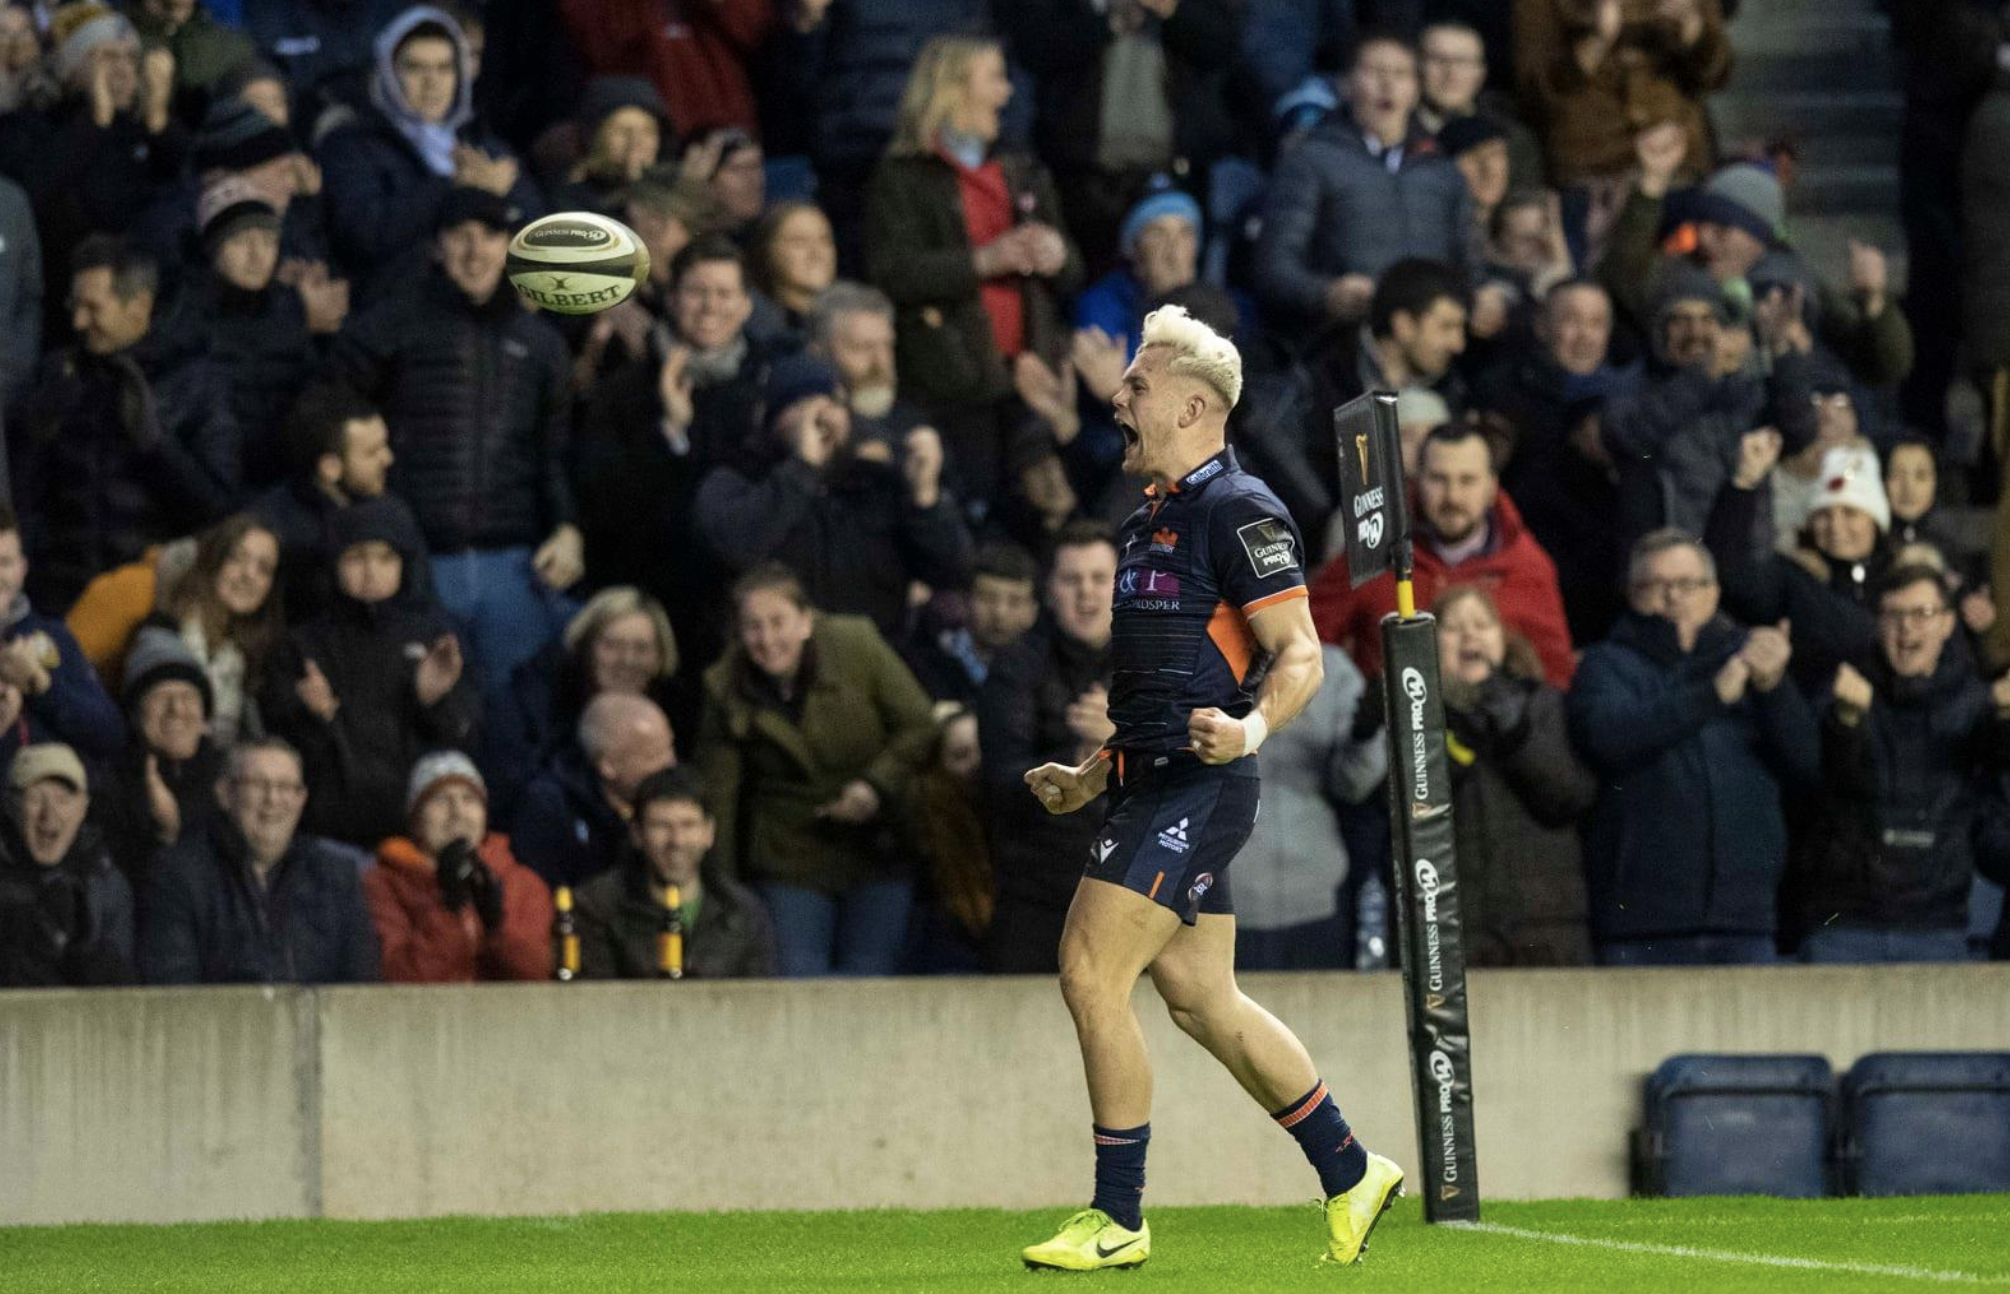 Edinburgh Rugby Renews with Relo to Speed Up Partner Insights